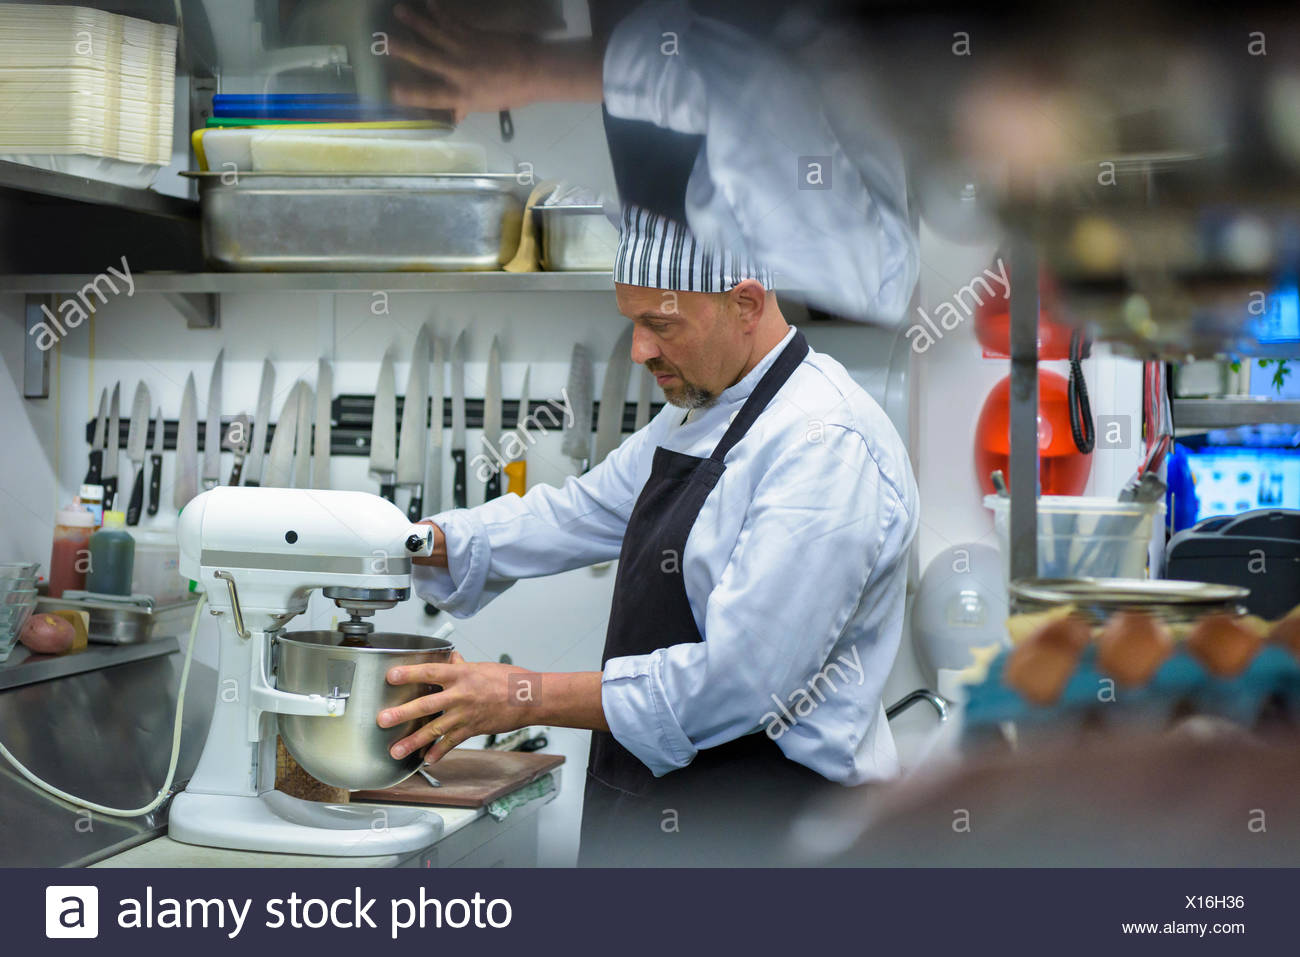 Chef mixes food in traditional Italian restaurant kitchen - Stock Image